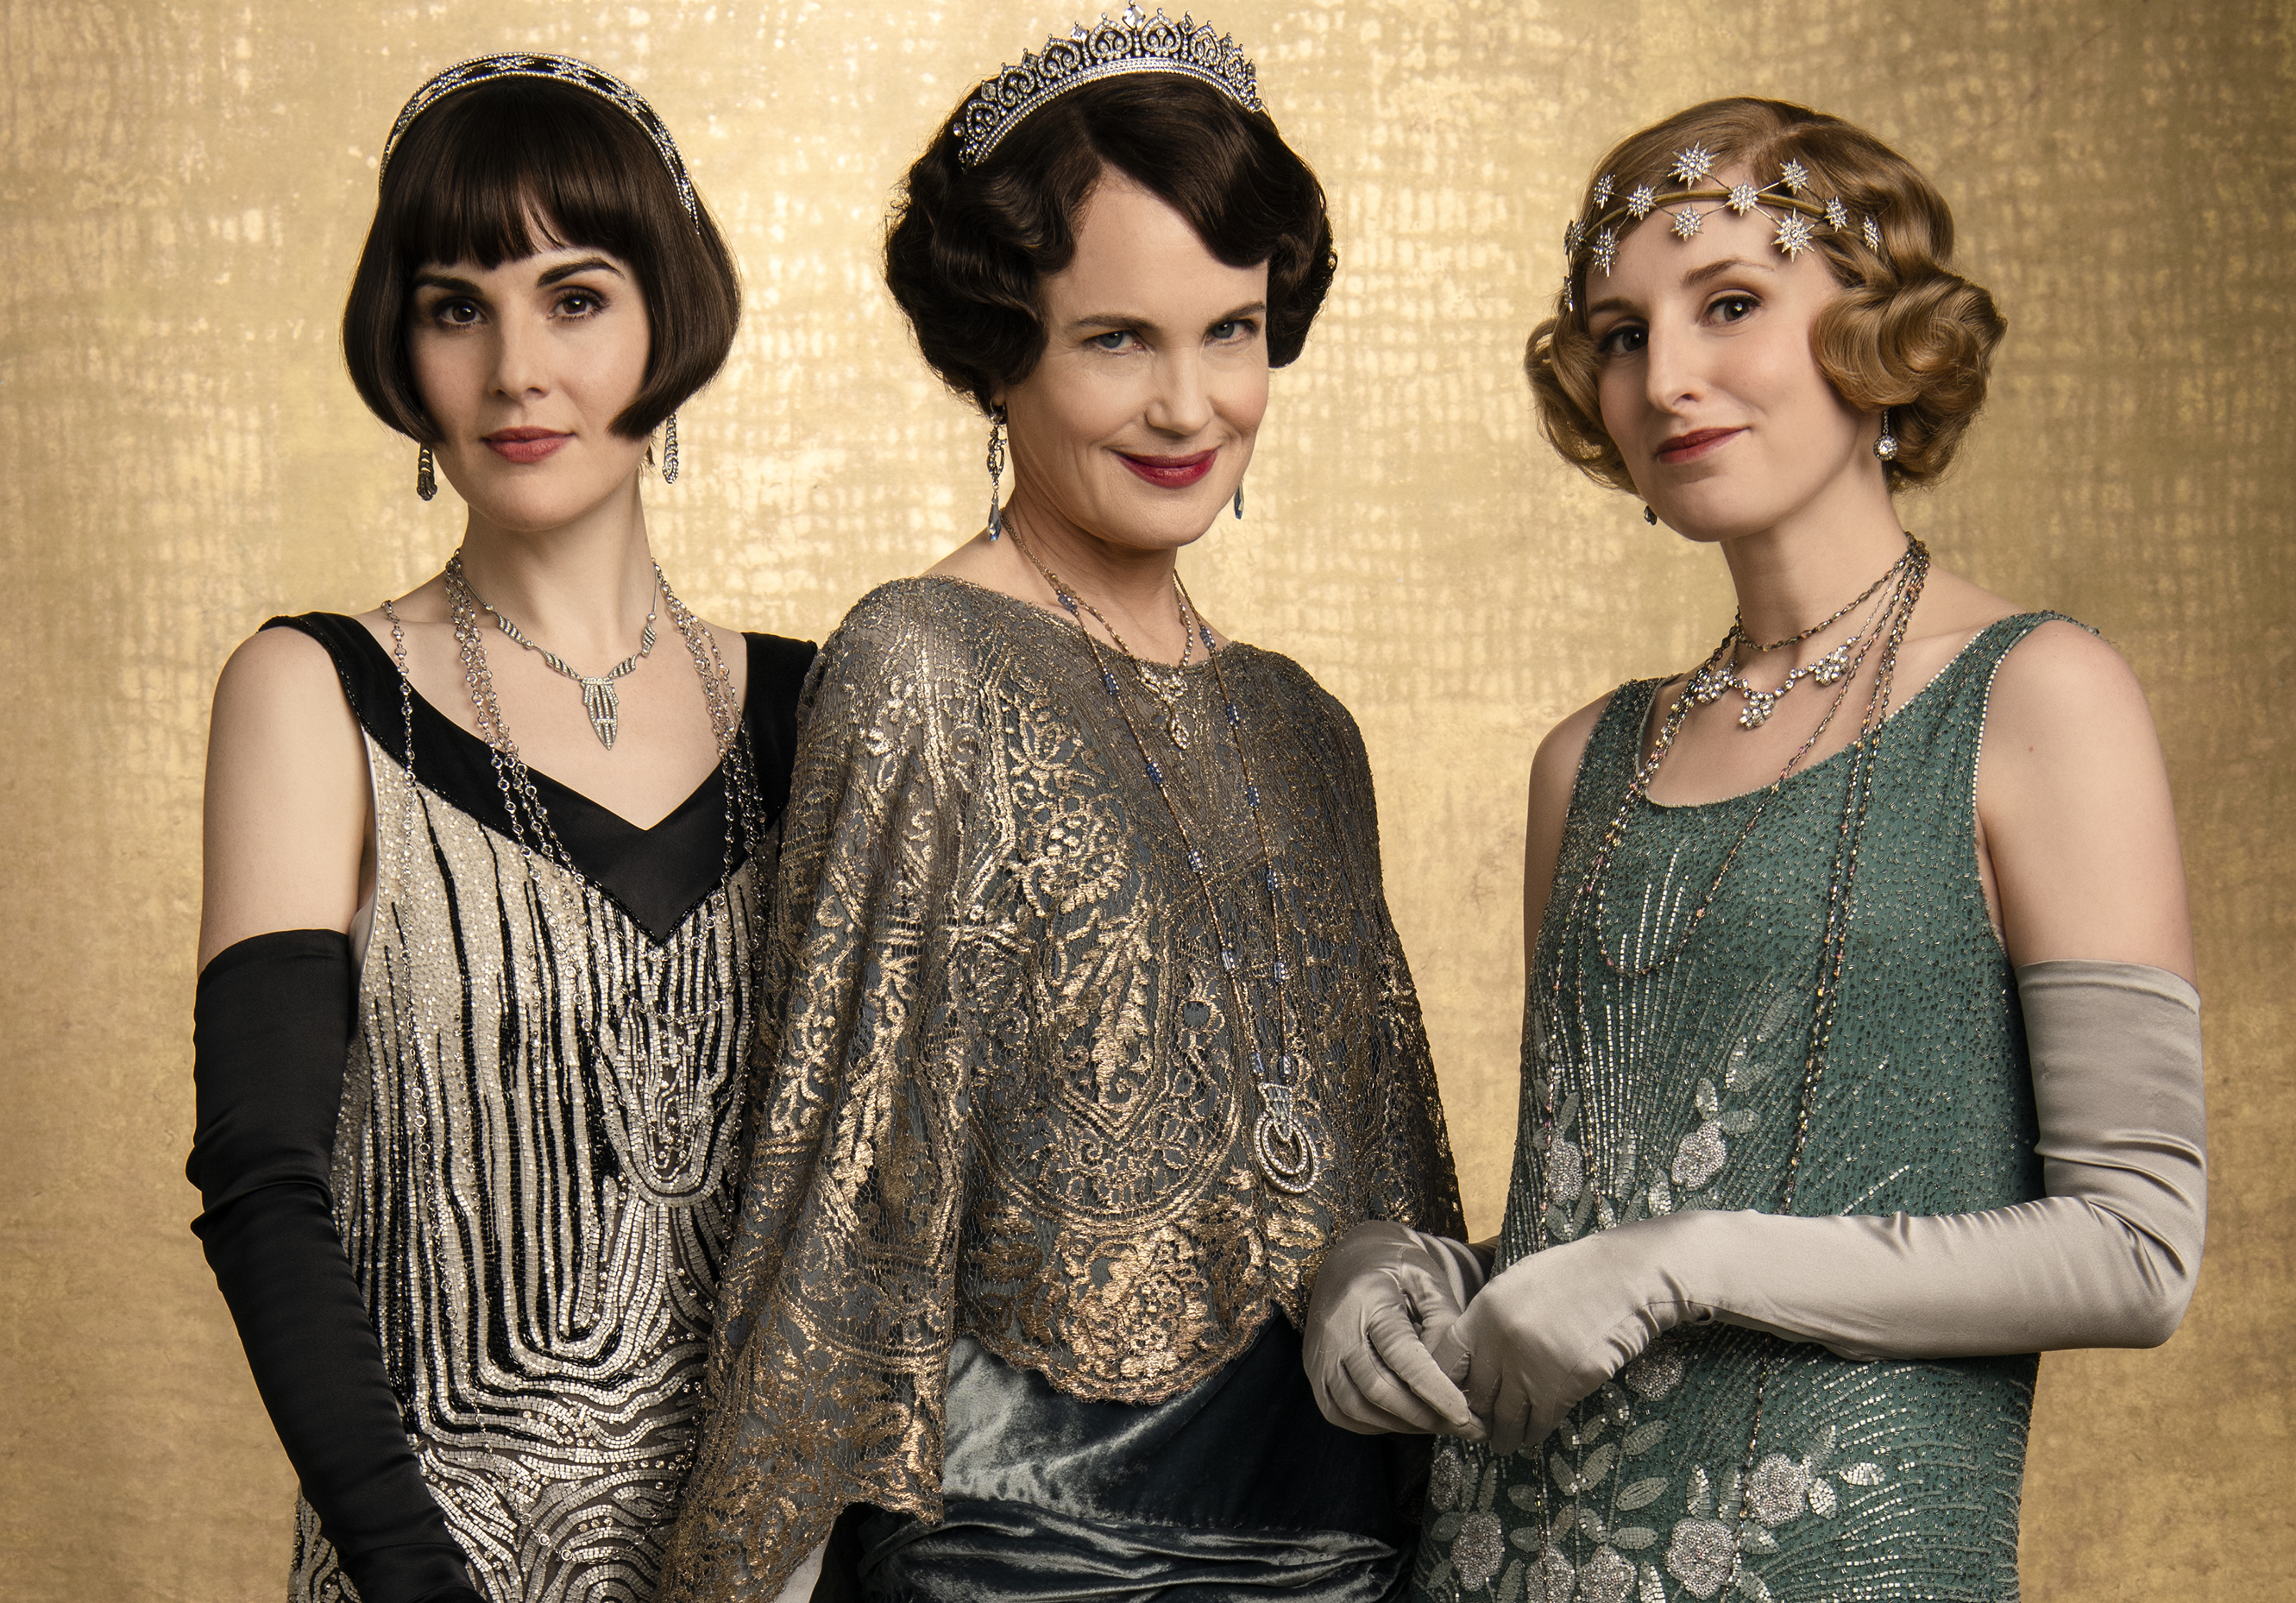 'Downton Abbey' Goes From Small Screen to King-Sized for Its Cinematic Debut